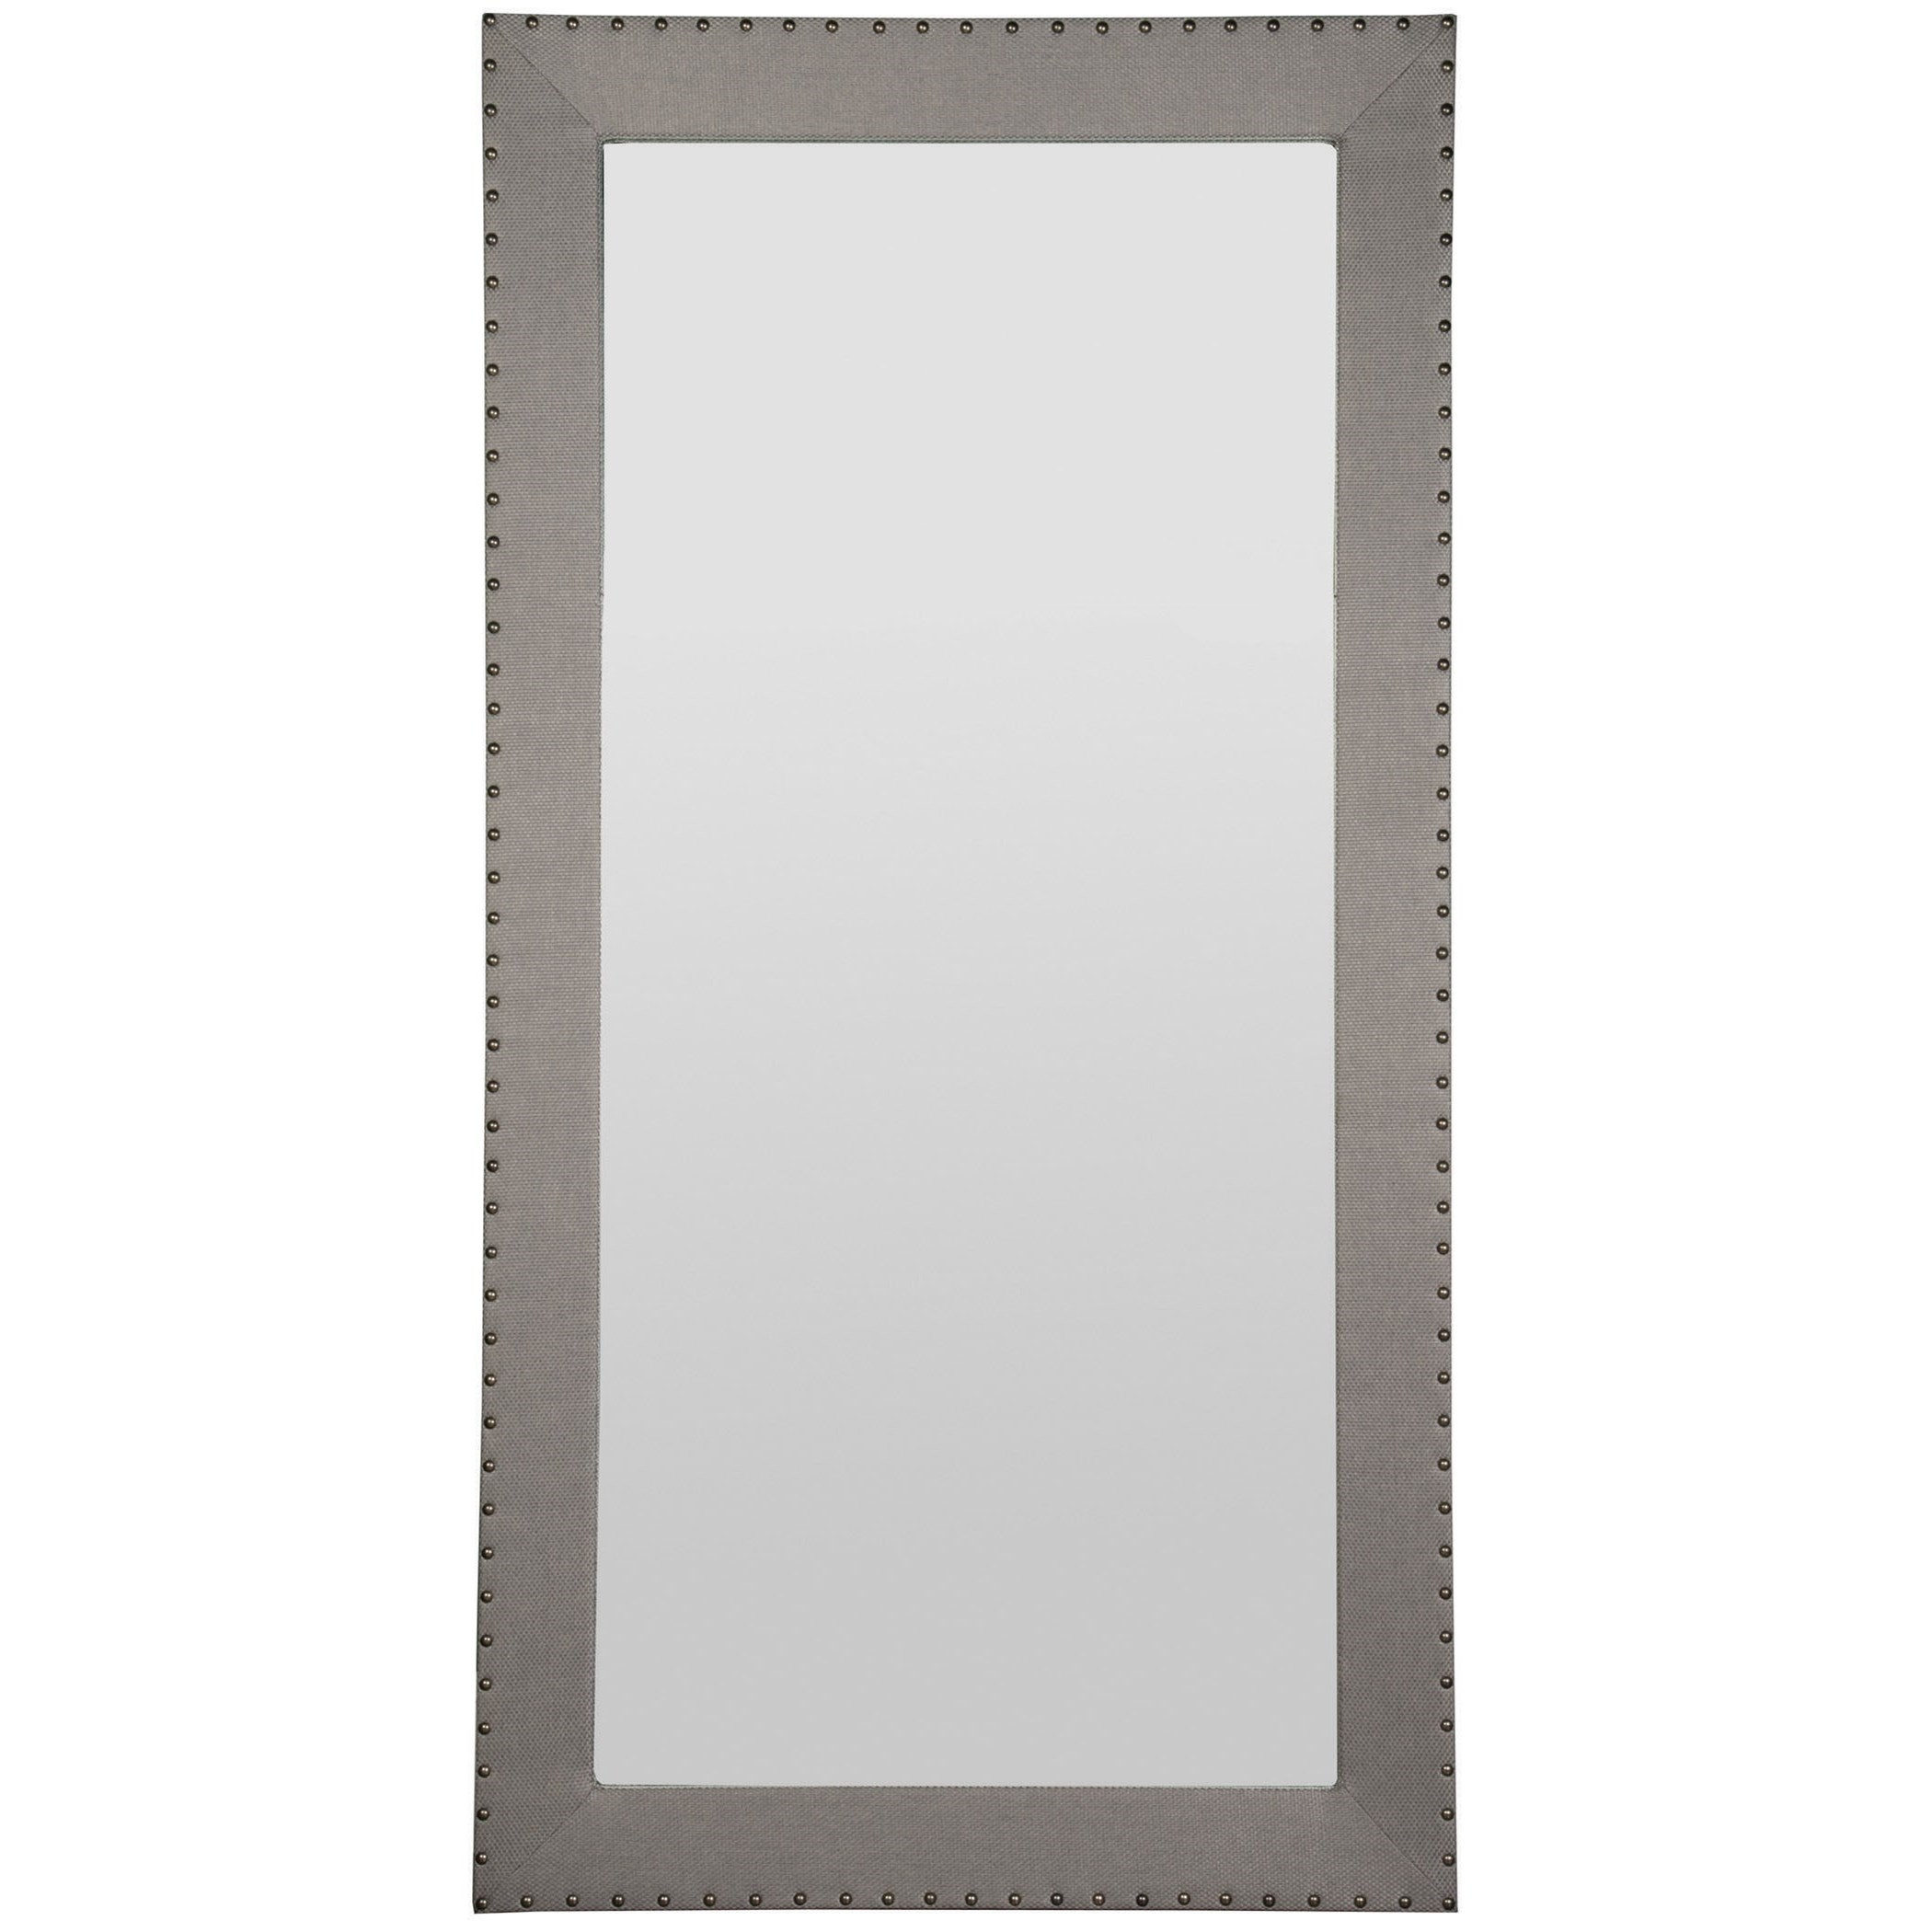 Thom Filicia Home Collection Corinithian Club Upholstered Floor Mirror by Vanguard Furniture at Baer's Furniture